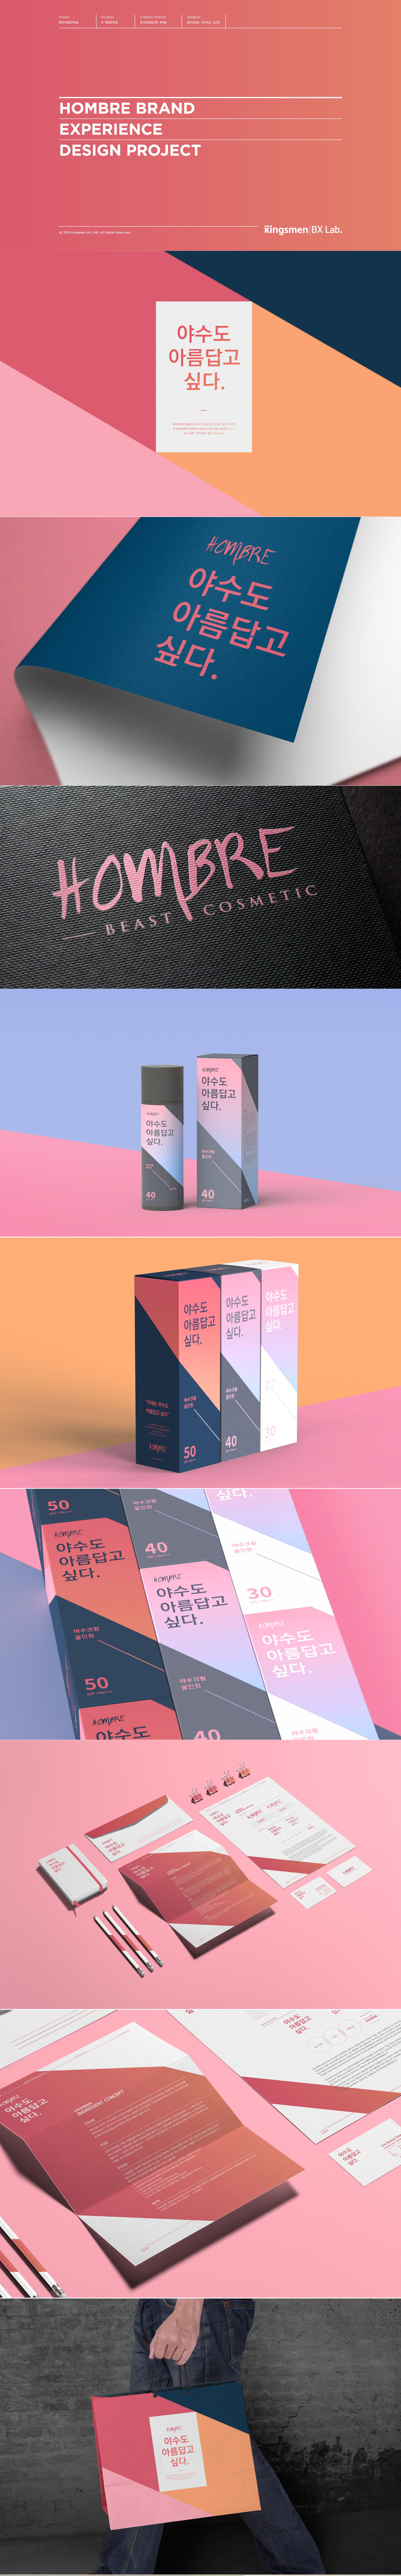 HOMBRE BRAND EXPERIENCE DESIGN PROJECT